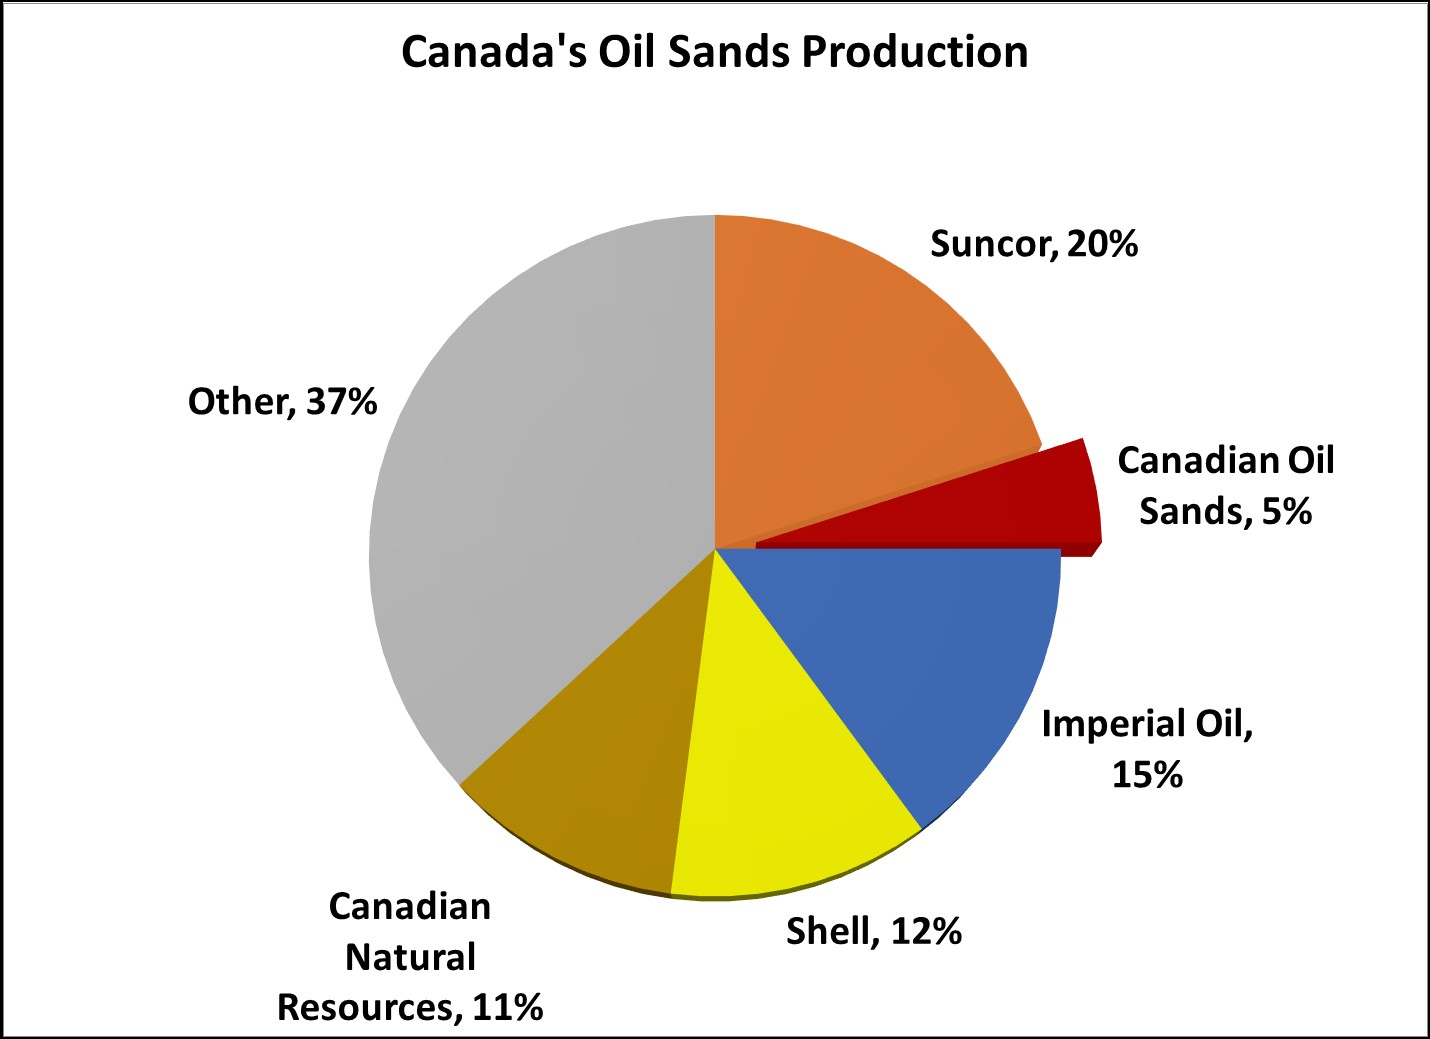 Oil Sands Production